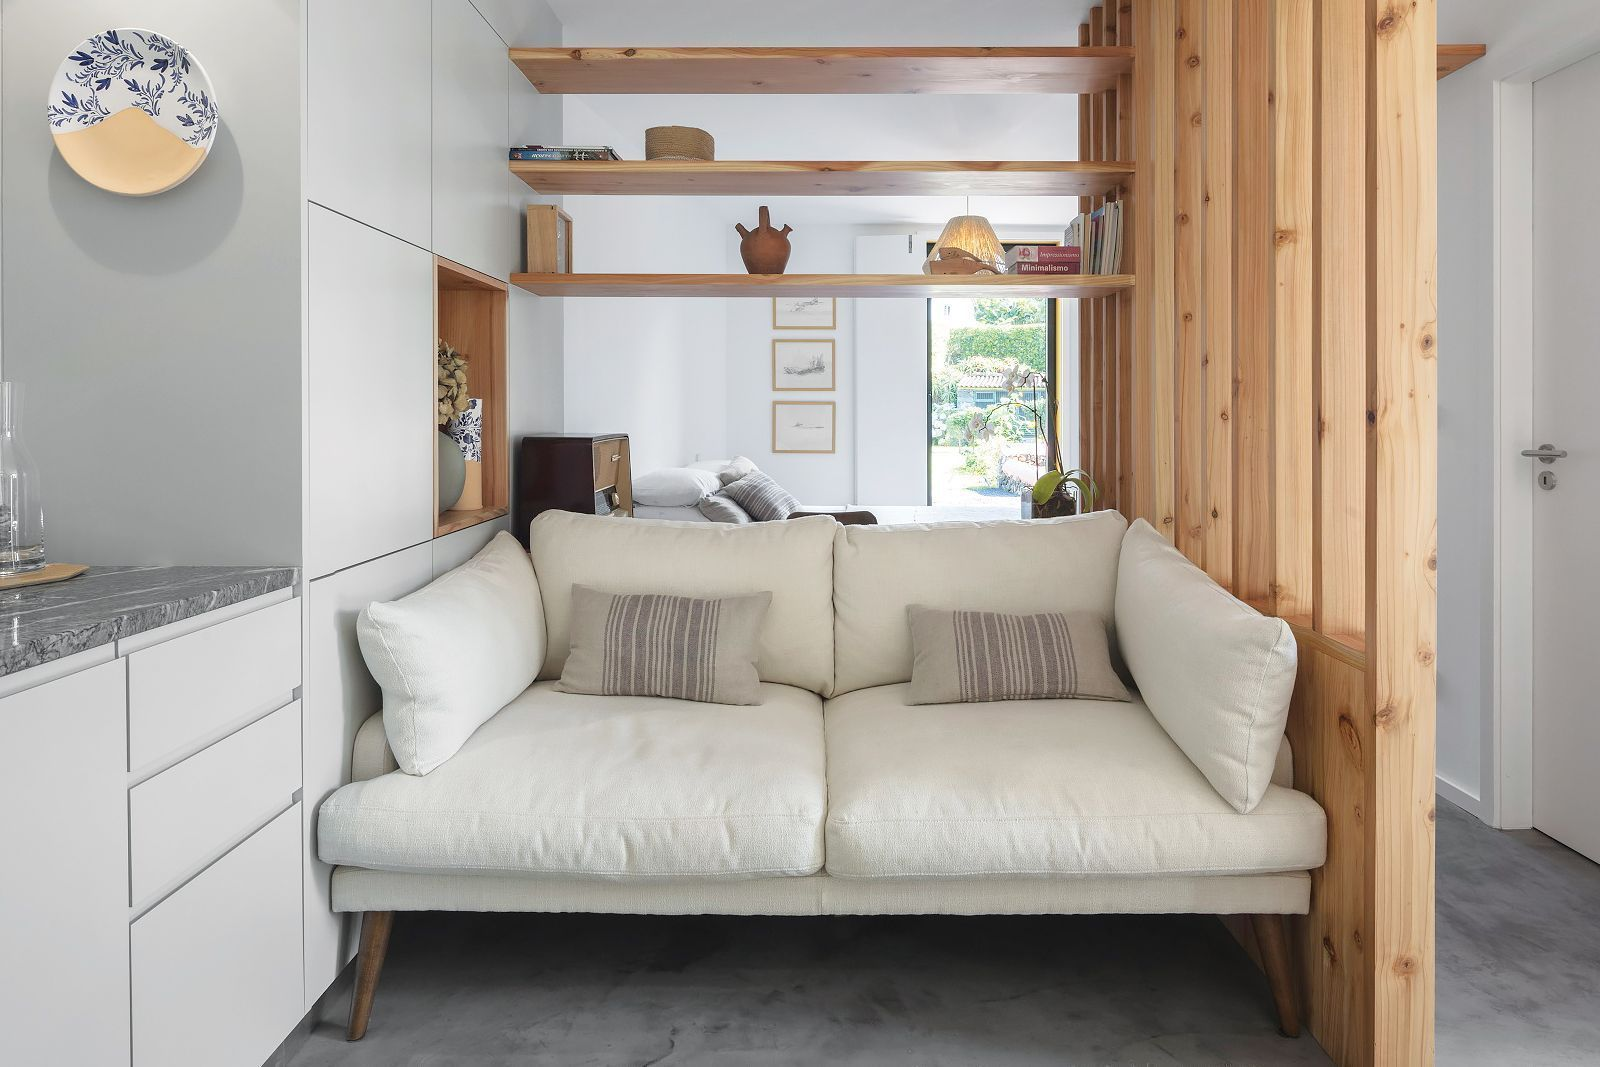 The Pink Studio, Azores, Portugal | vacation homes for rent